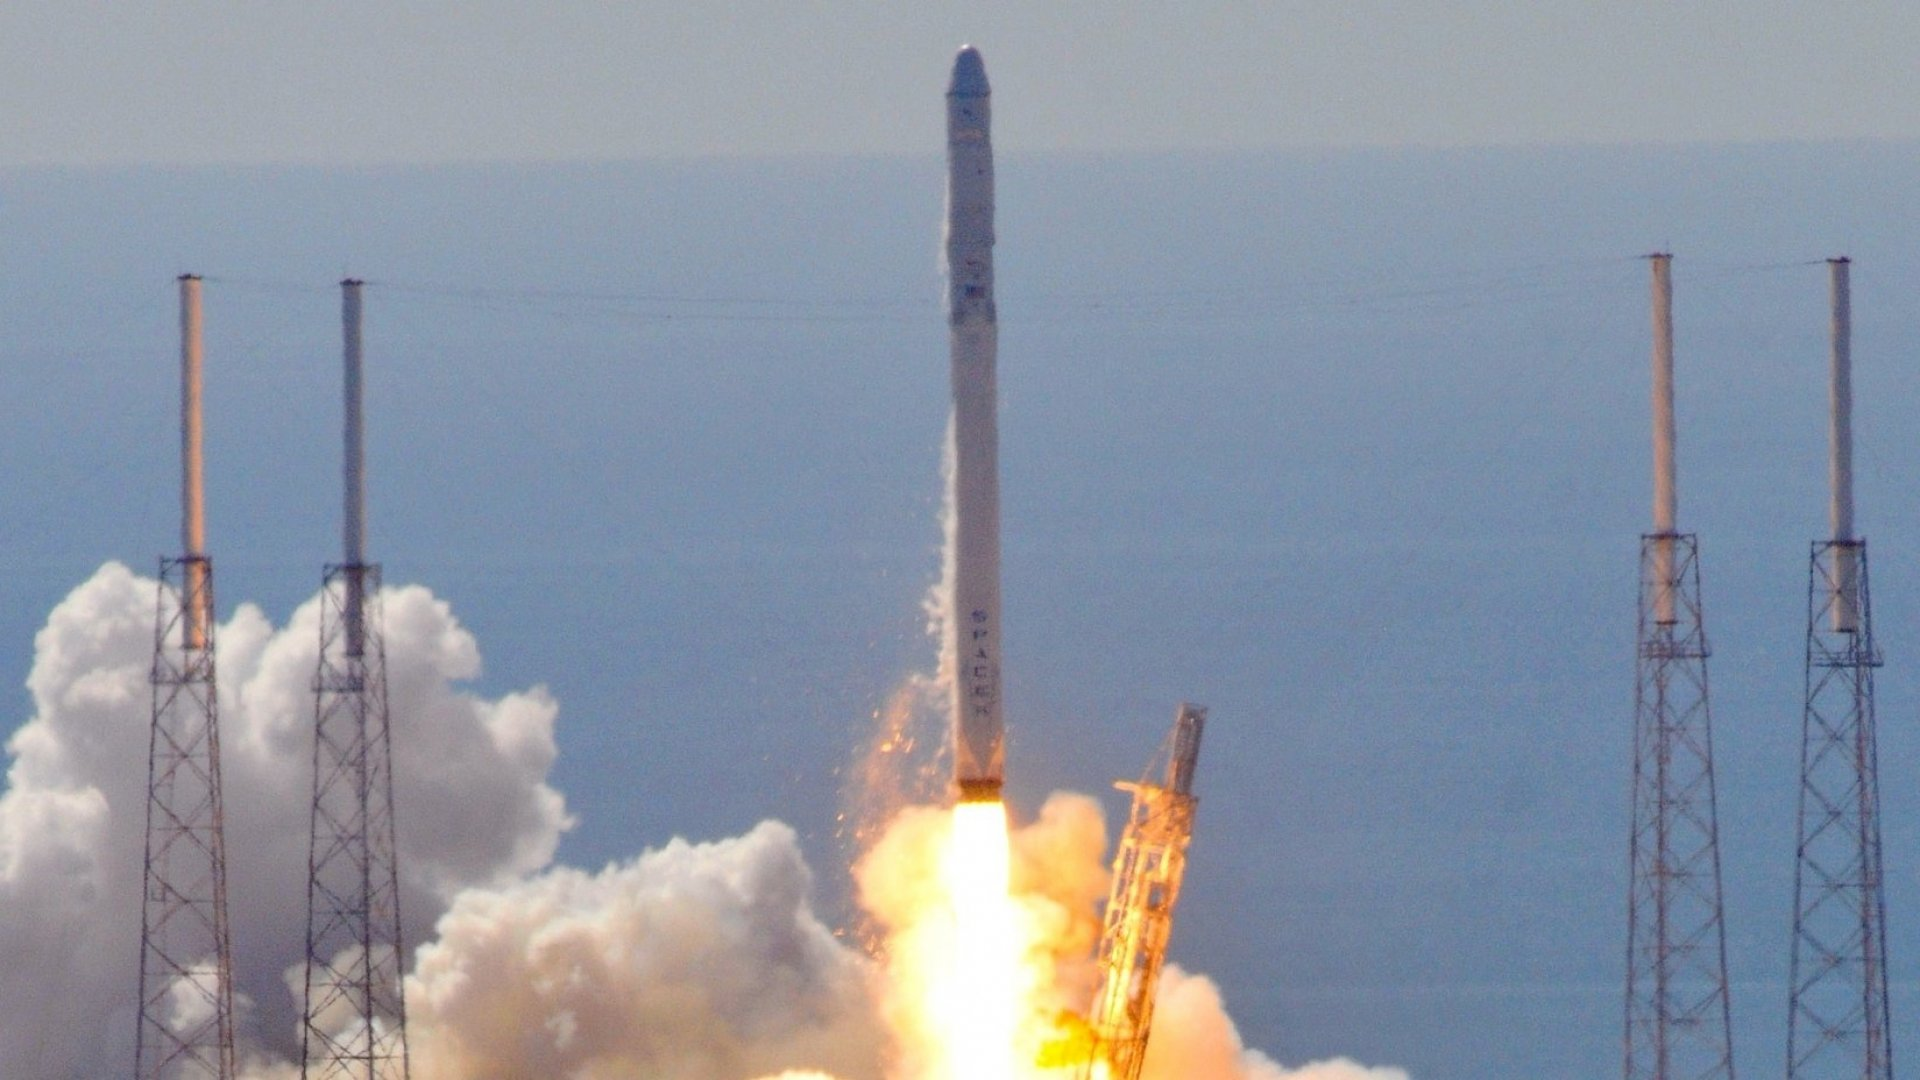 Elon Musk's SpaceX Postpones Rocket Launch Again